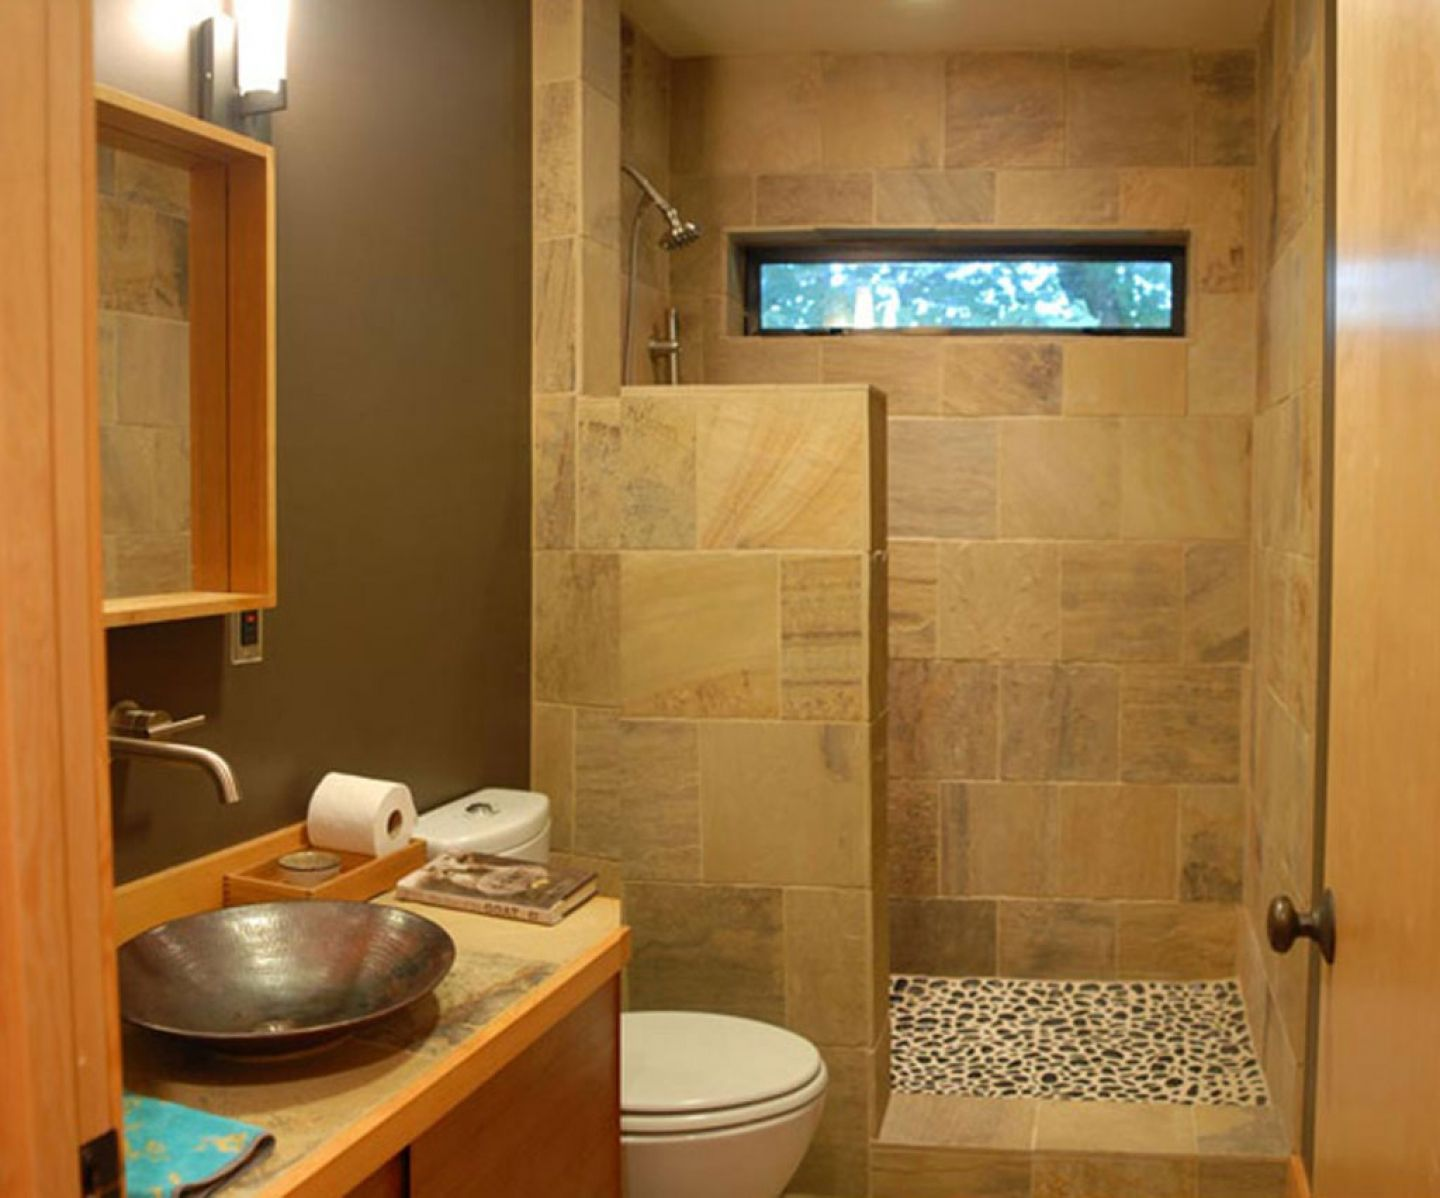 Small bathroom ideas - 30 Best Small Bathroom Ideas